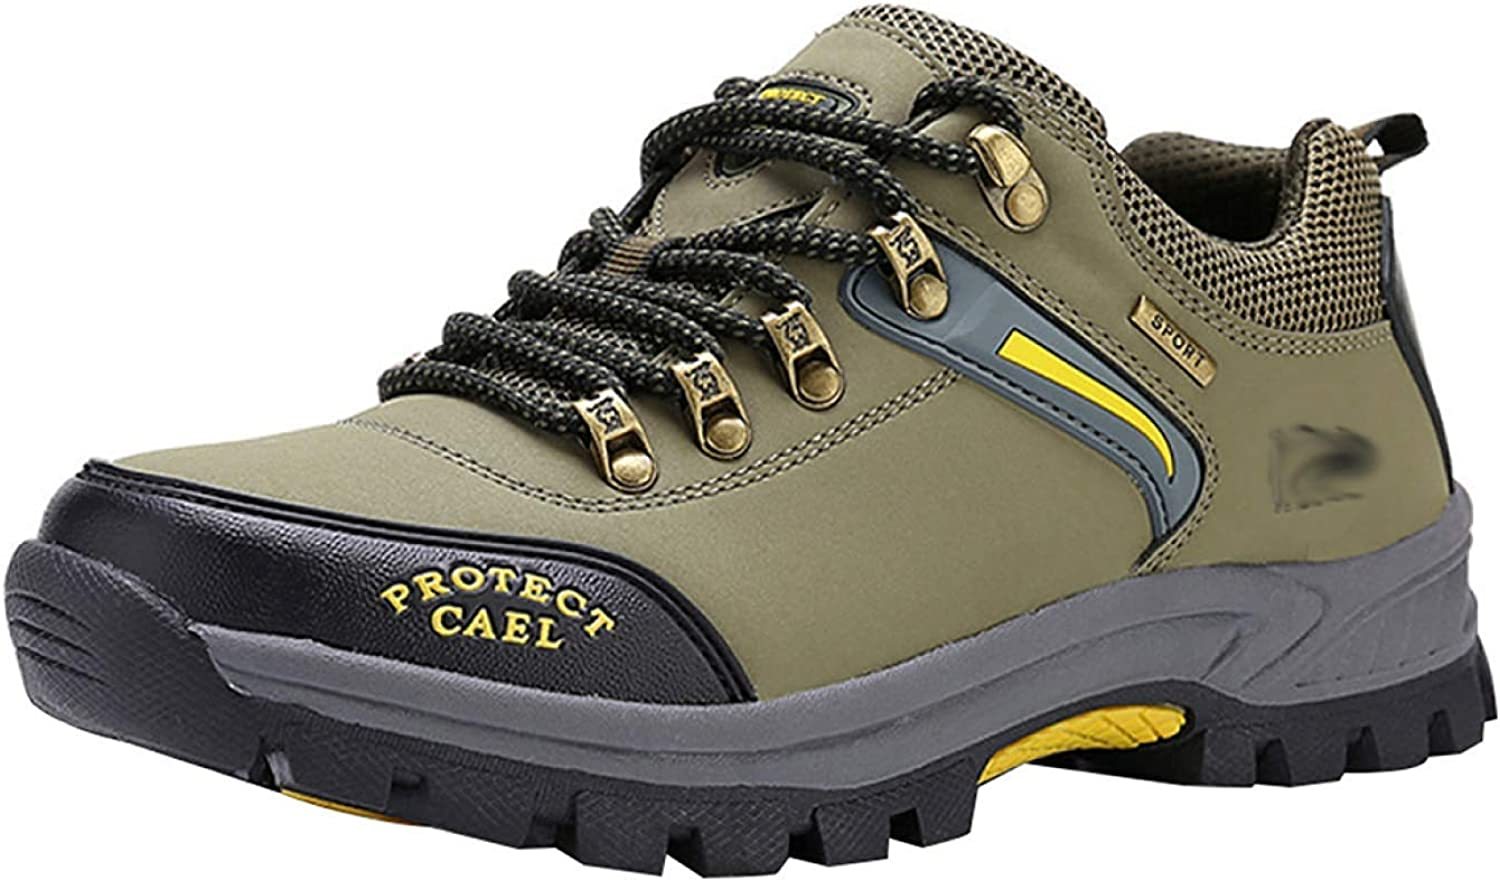 Fuxitoggo Men's Walking Boots Leather Hiking shoes Sneakers For Outdoor Trekking Training Casual Work (color   26, Size   42EU)